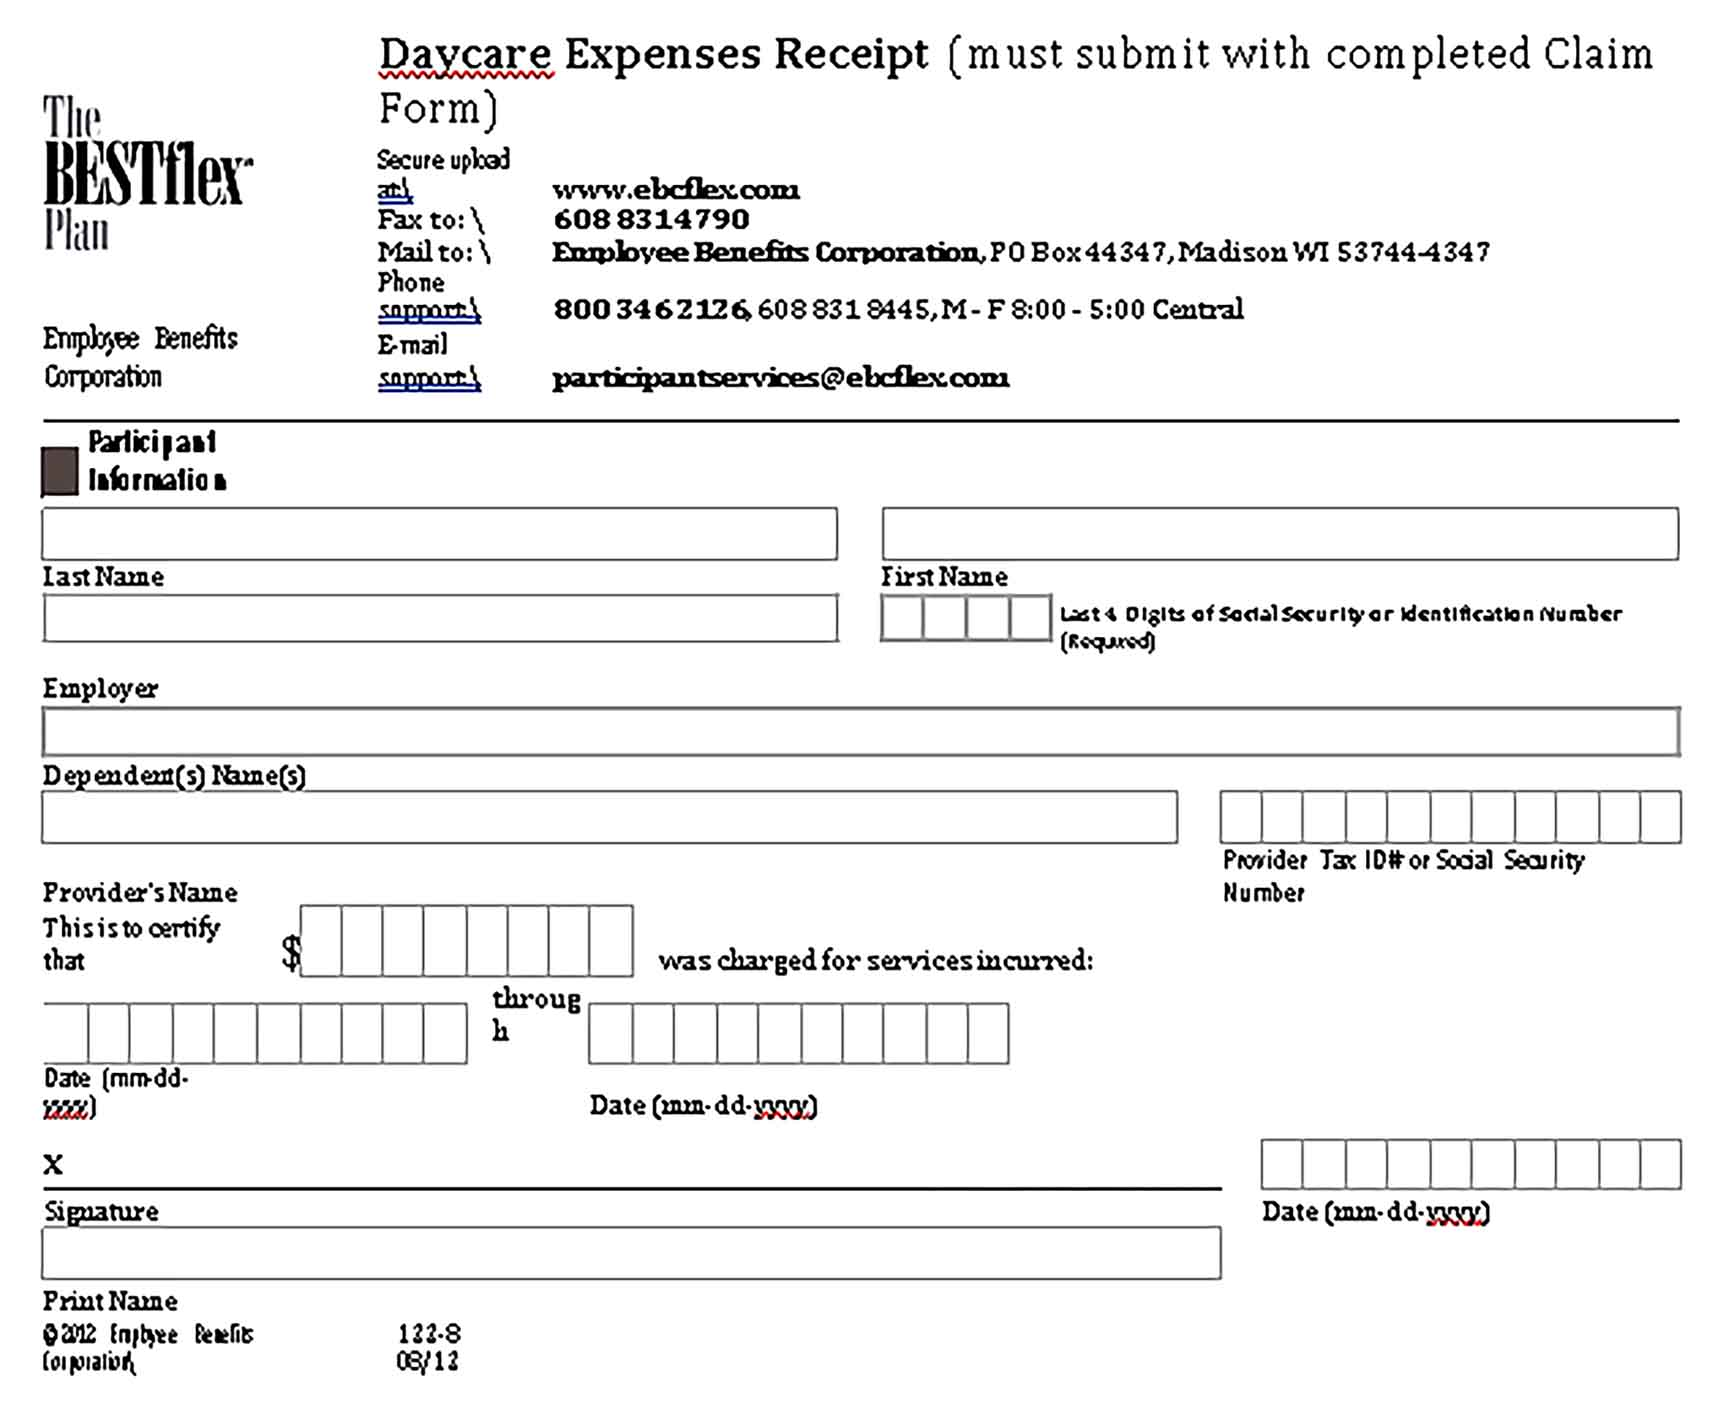 Sample Daycare Expenses Receipt Templates